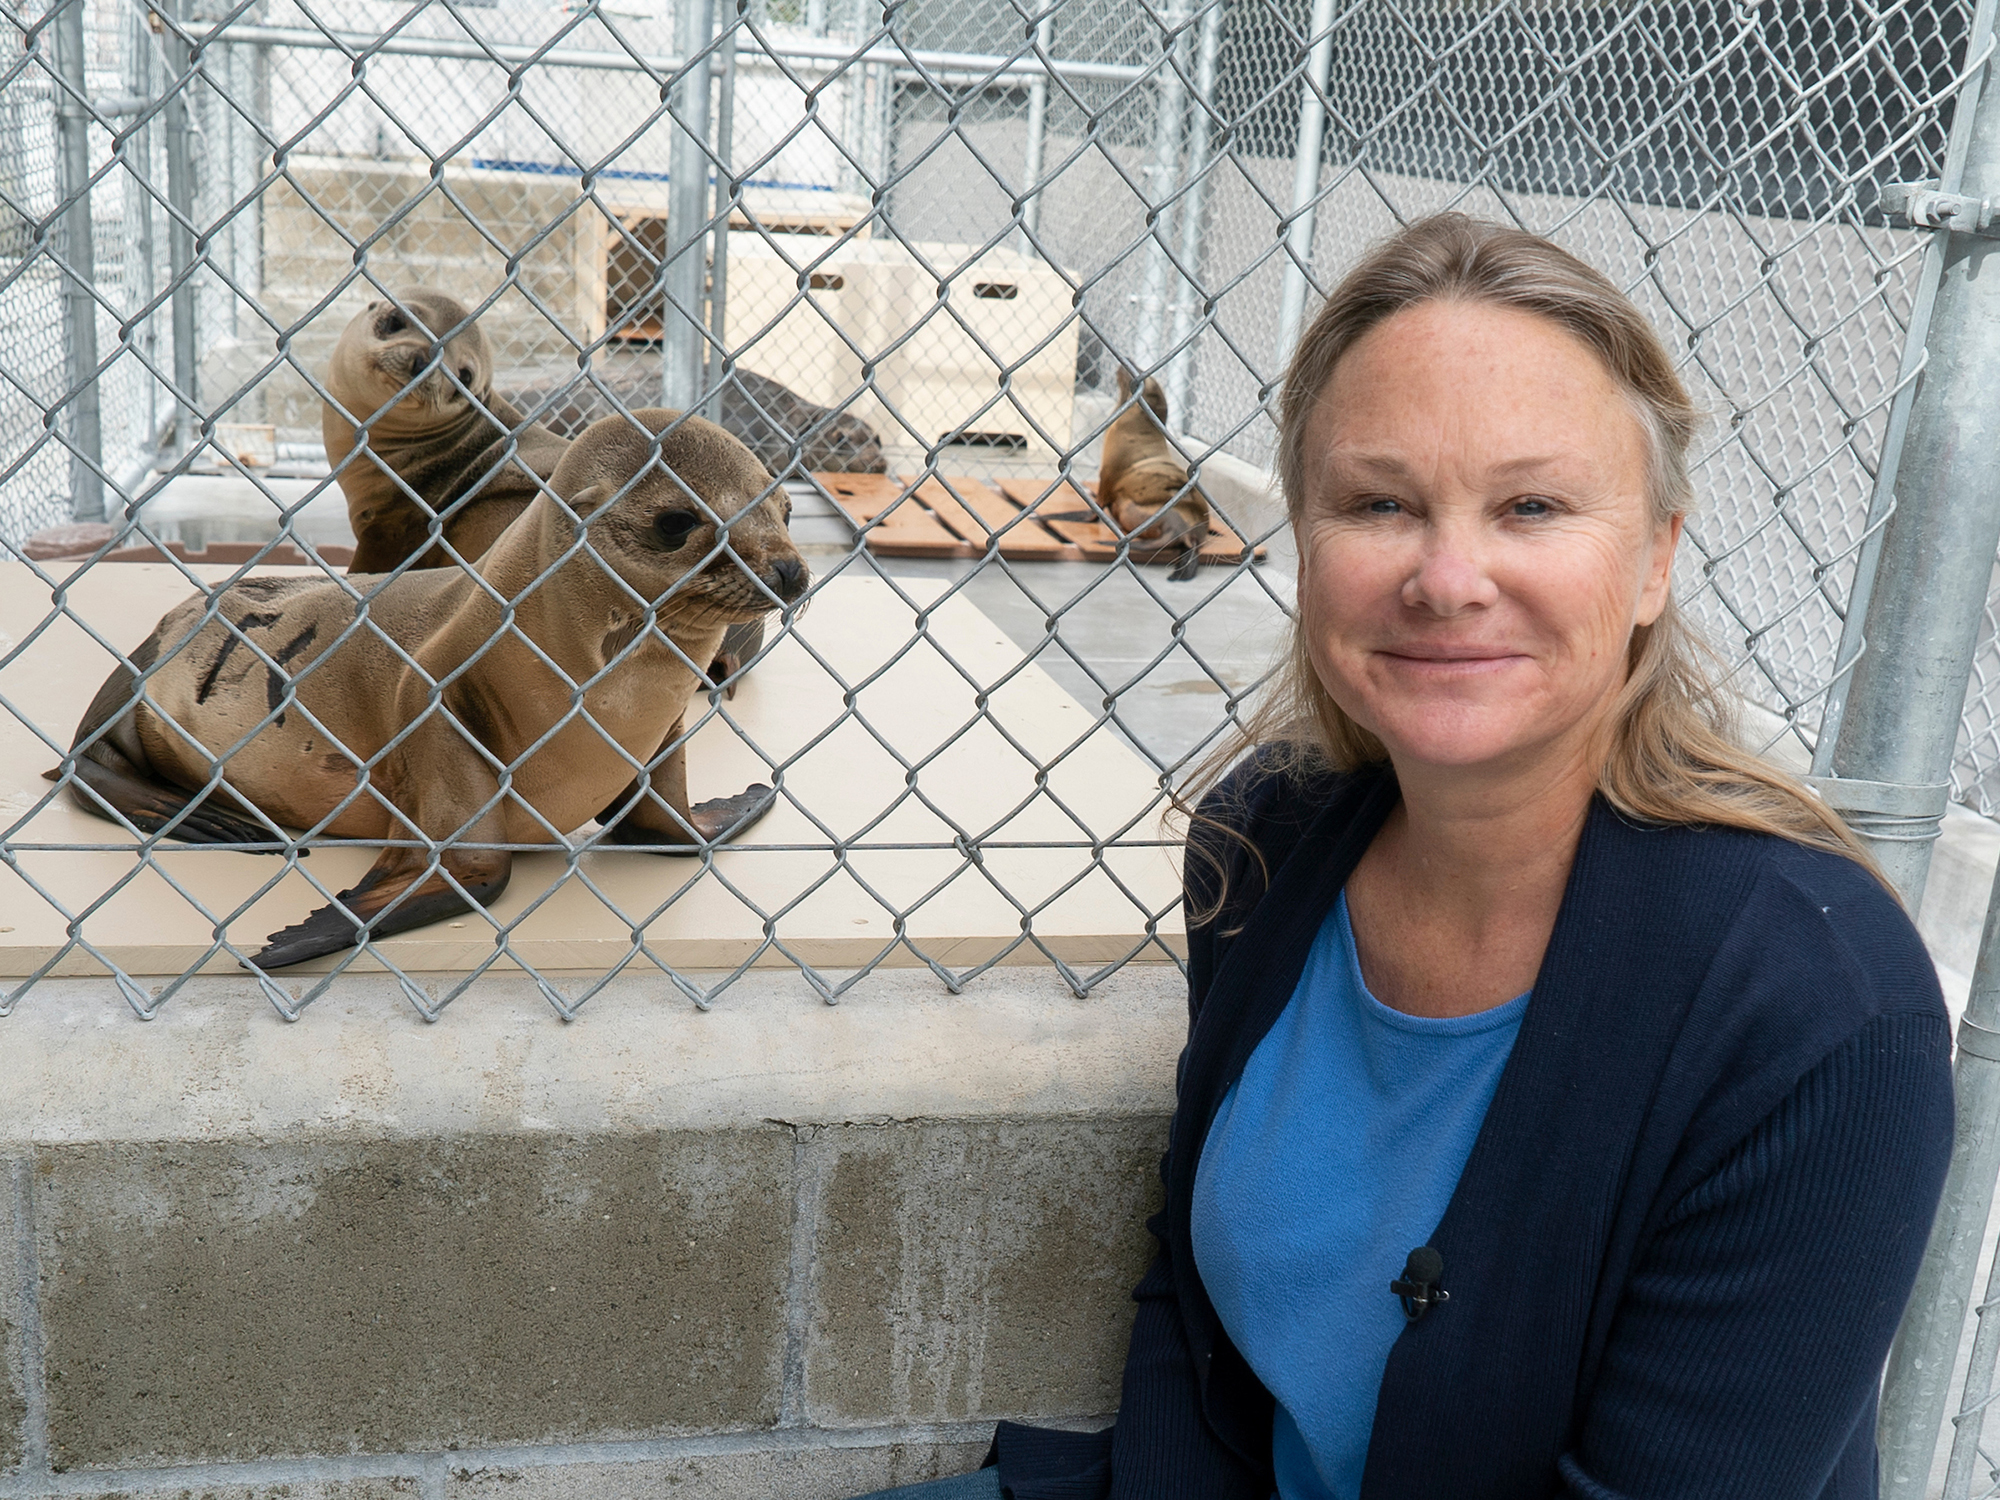 university of iowa alumna lauren palmer rehabilitates seals as part of her work with marine mammals